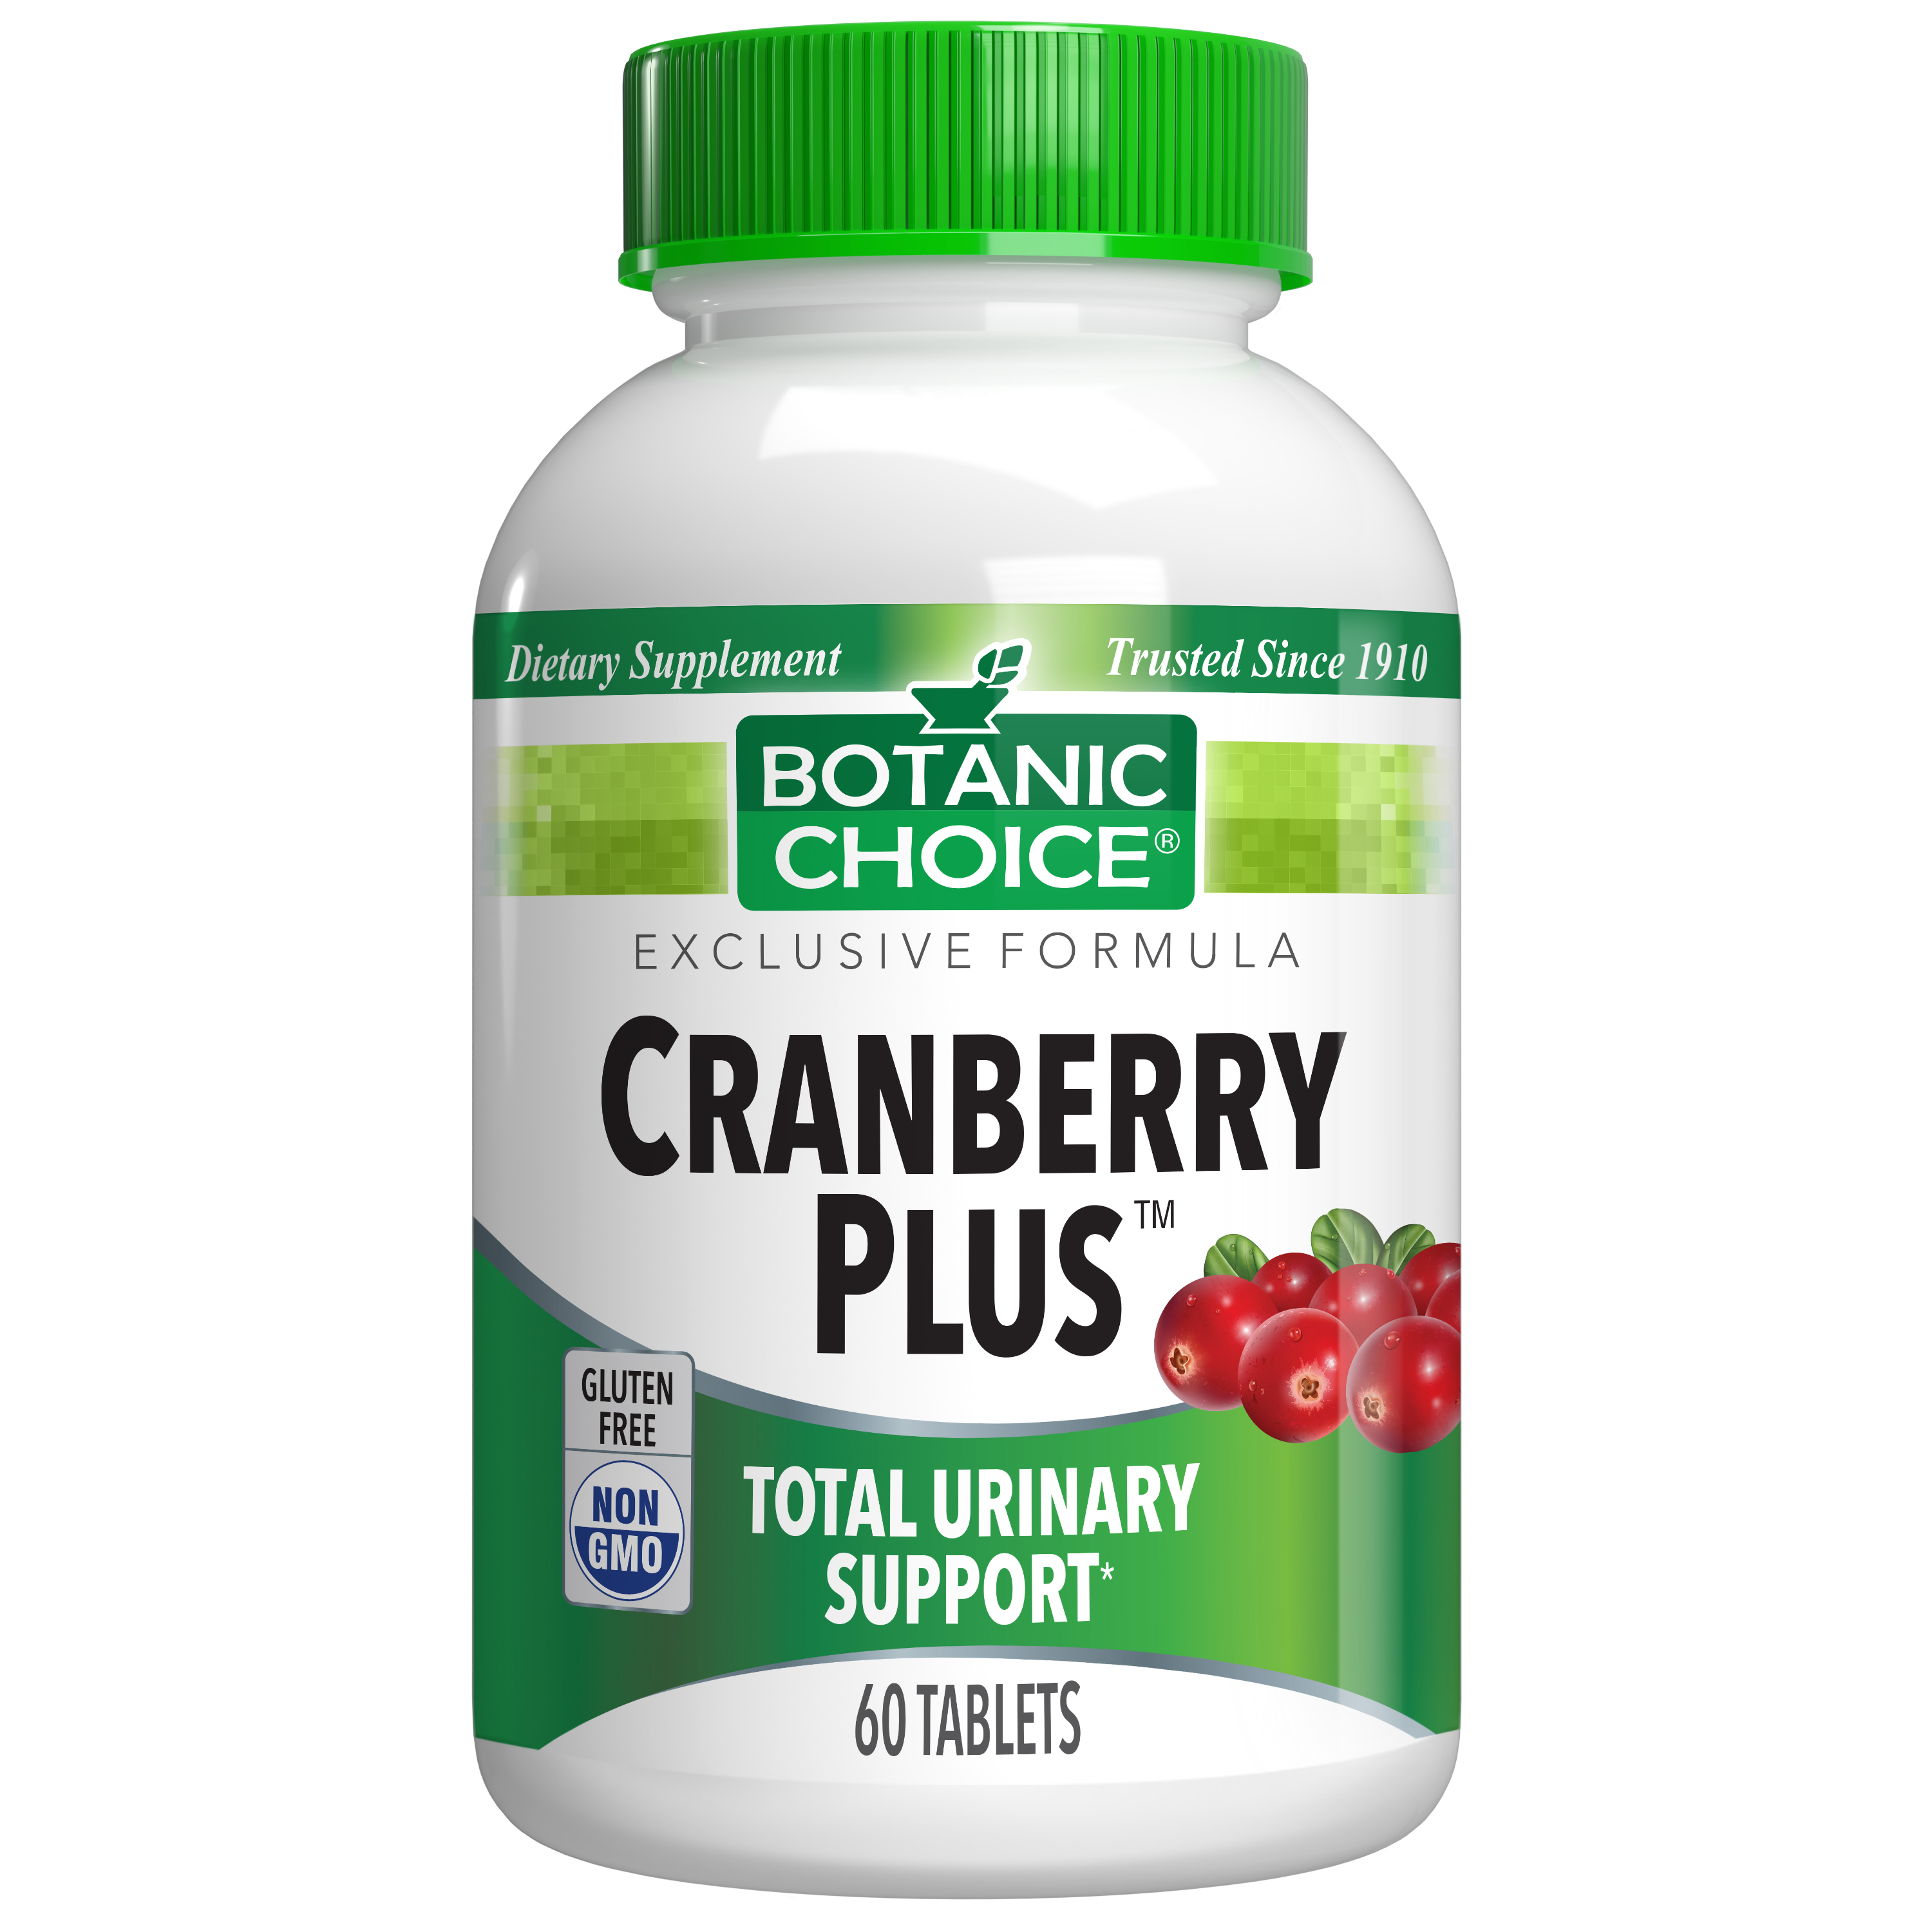 Botanic Choice Cranberry Plus™ - Urinary Support Supplement - 60 Tablets